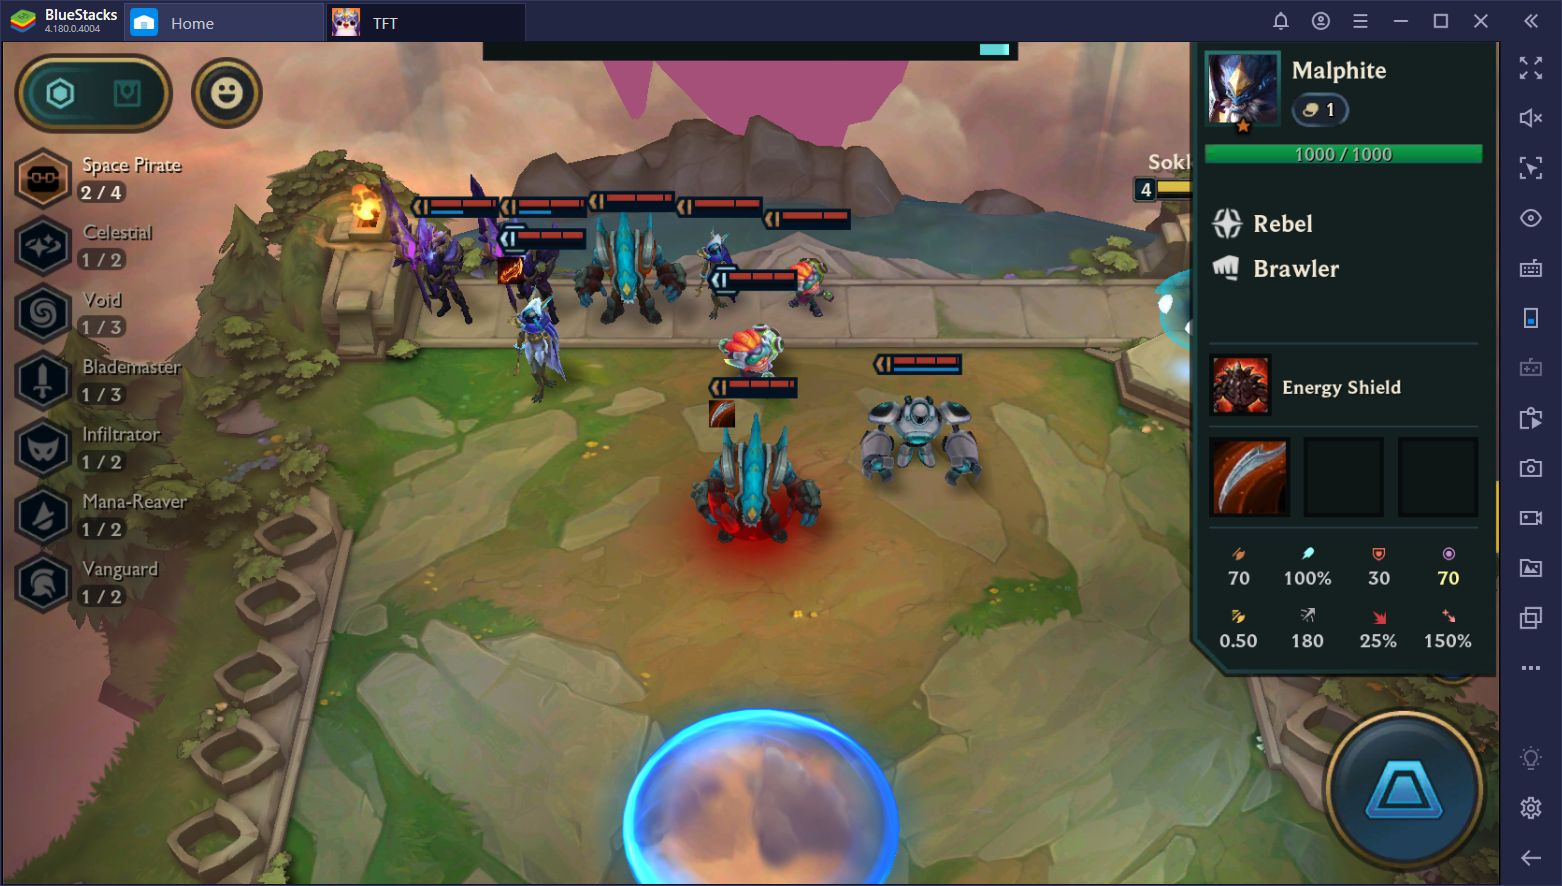 Teamfight Tactics on PC - Best Team Compositions for Patch 10.7